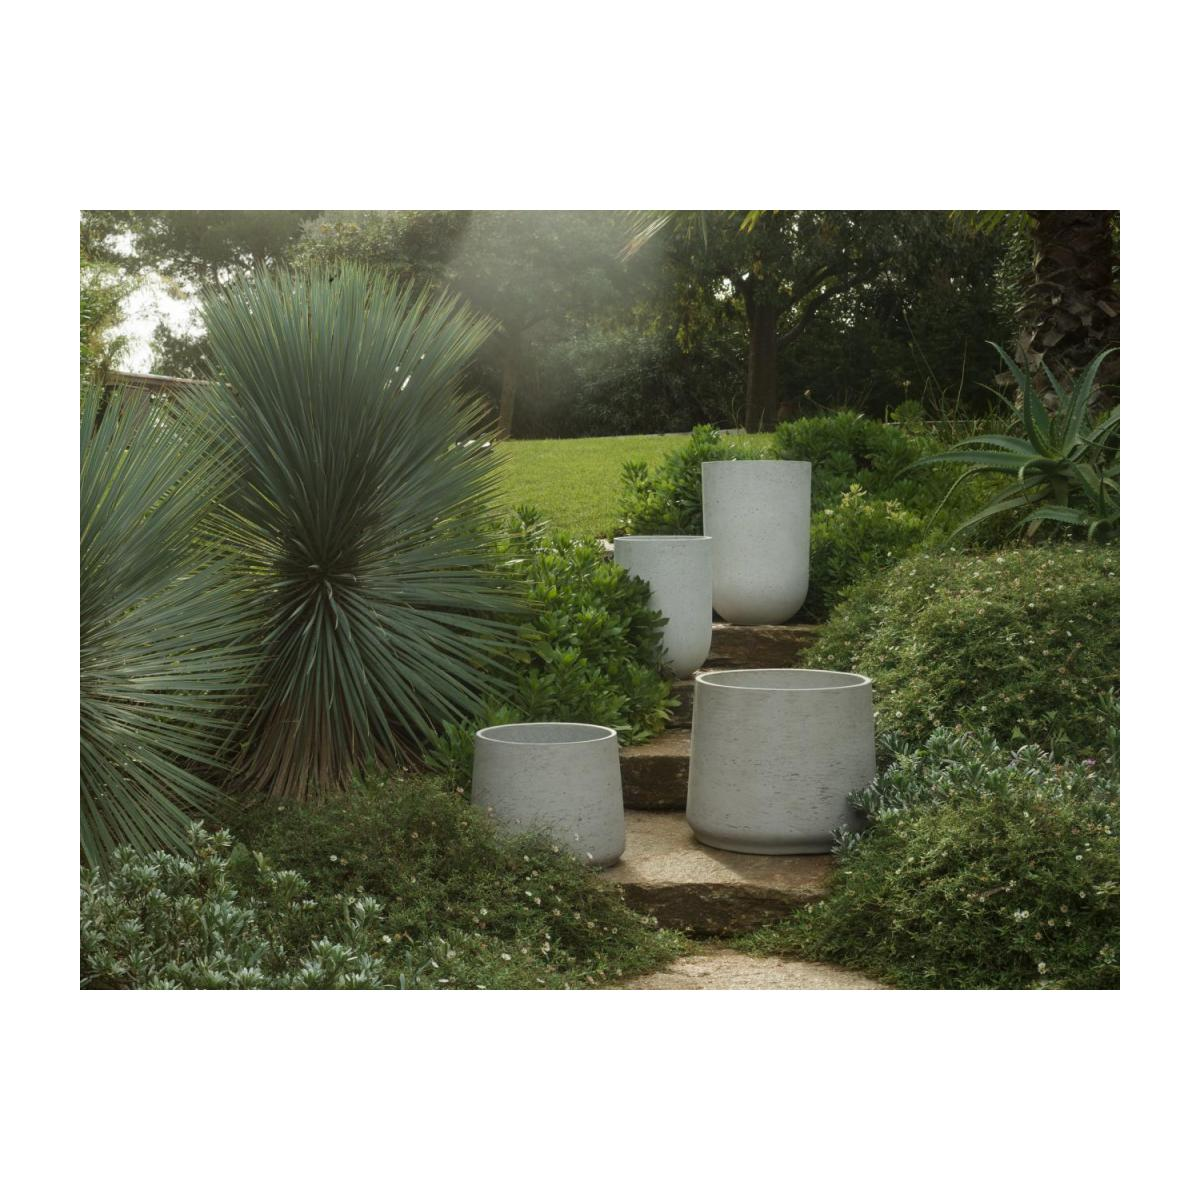 Lot de 2 cache-pots en ciment - Gris clair n°2